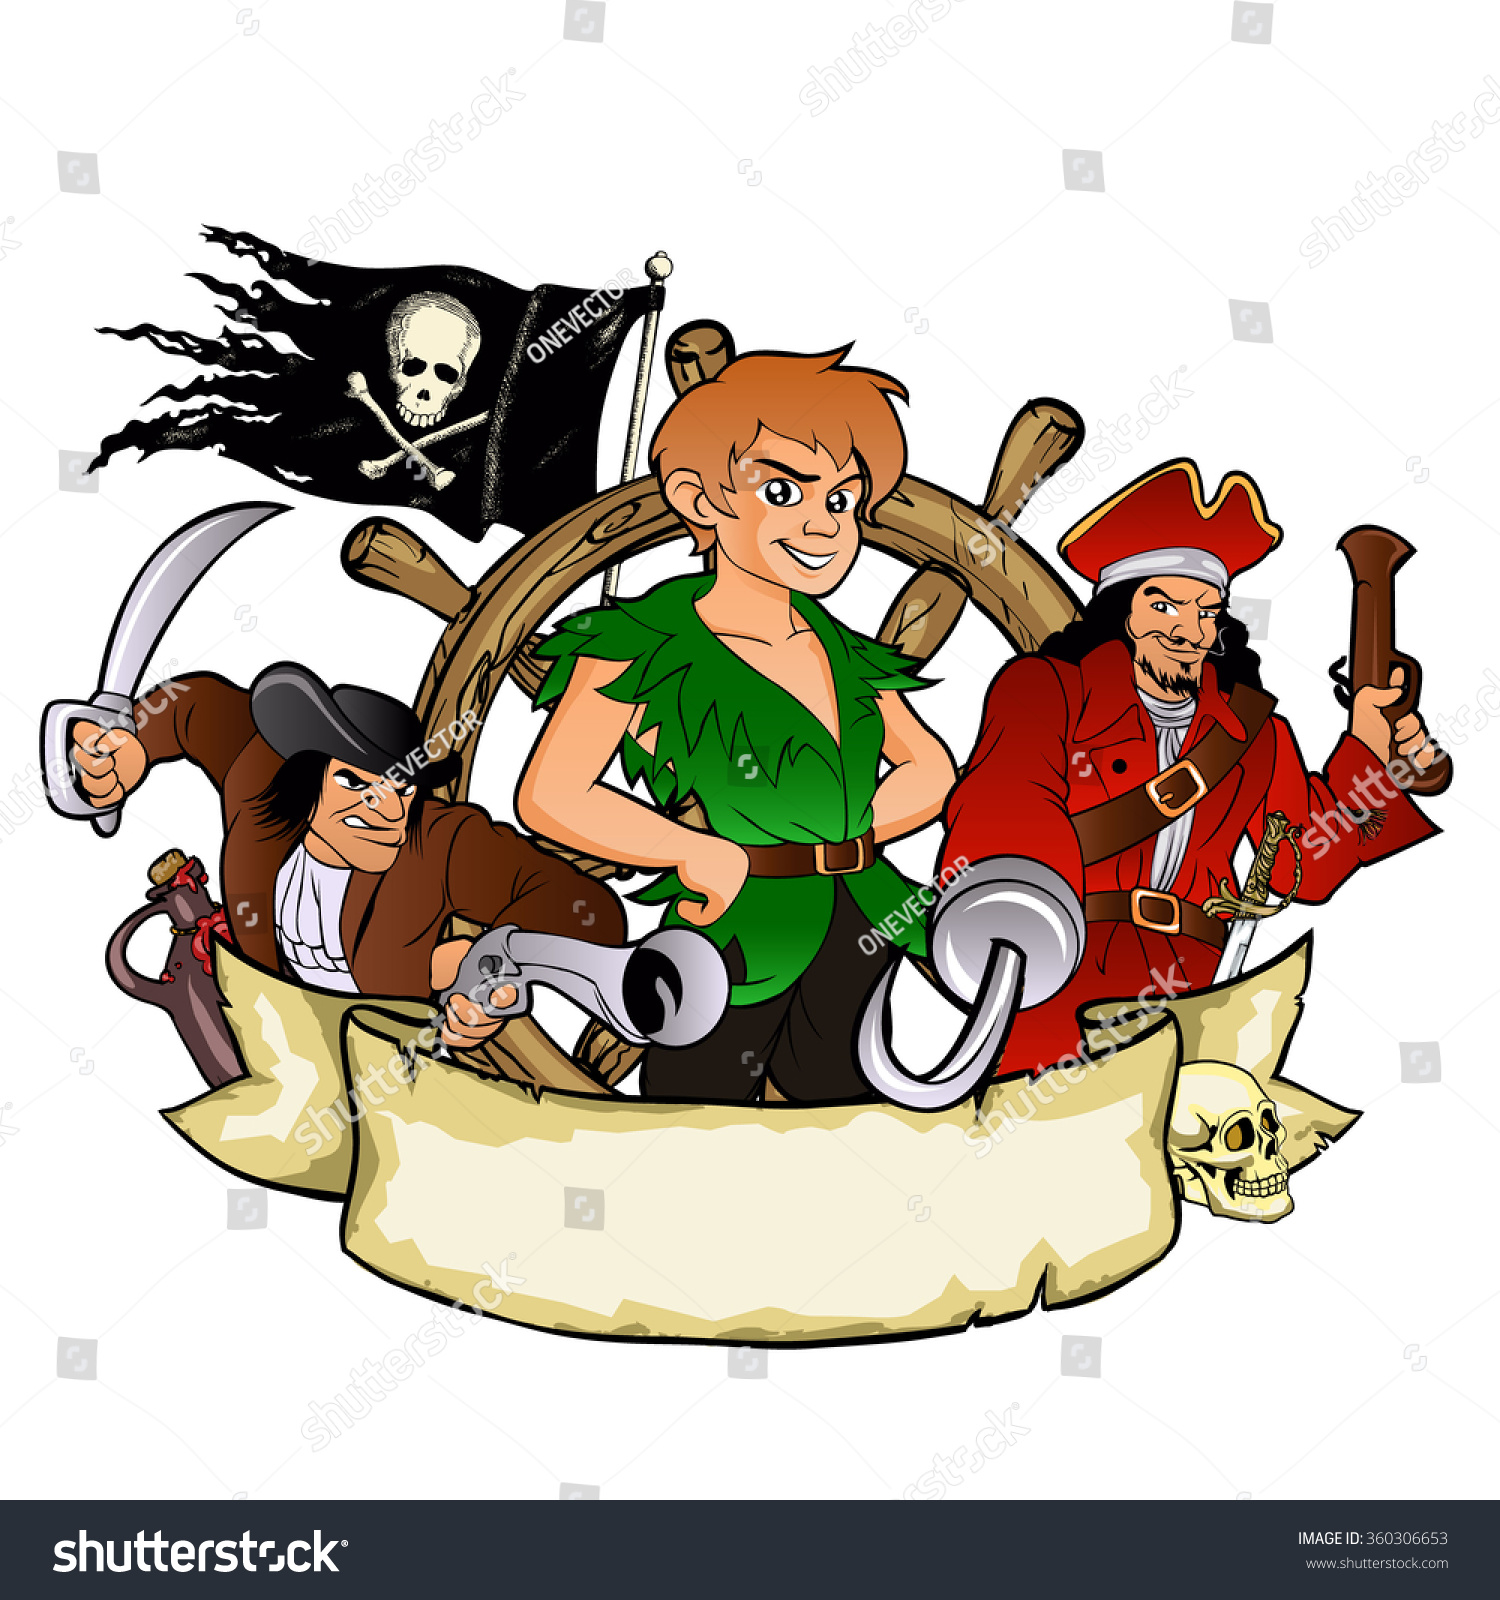 Peter Pan Pirates Emblem Stock Vector 360306653 - Shutterstock